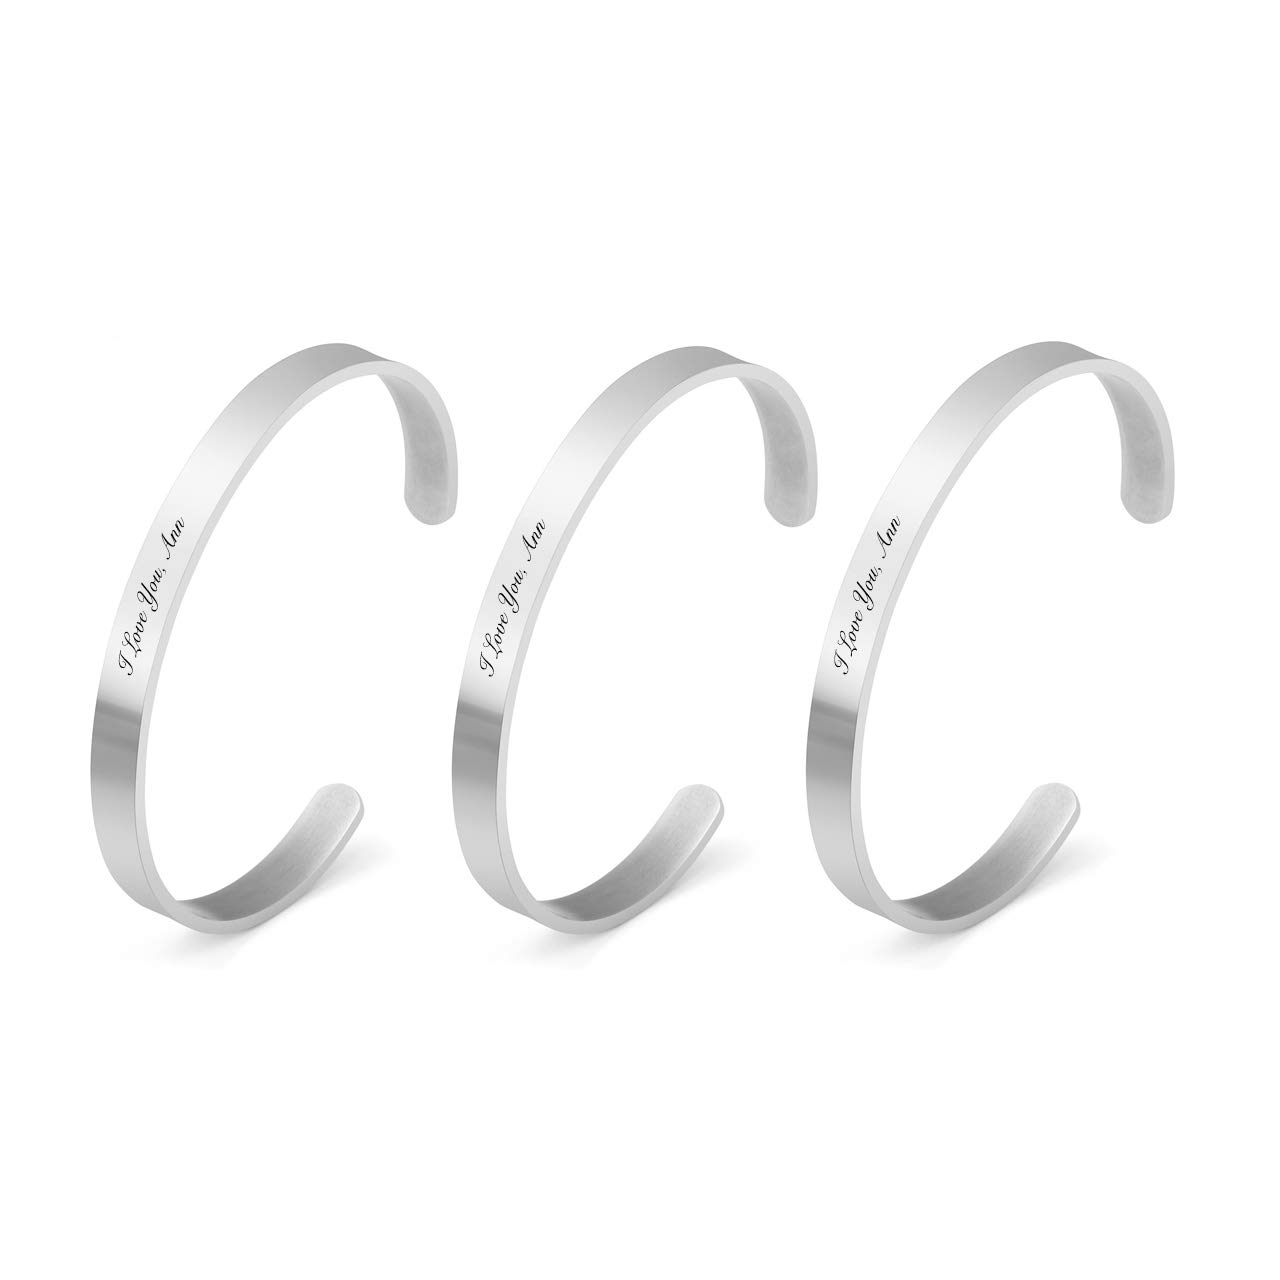 Zysta Inspirational Cuff Bangle Bracelet Stainless Steel Difficult Tough Time Secret Message Mantra Encouraging Gift